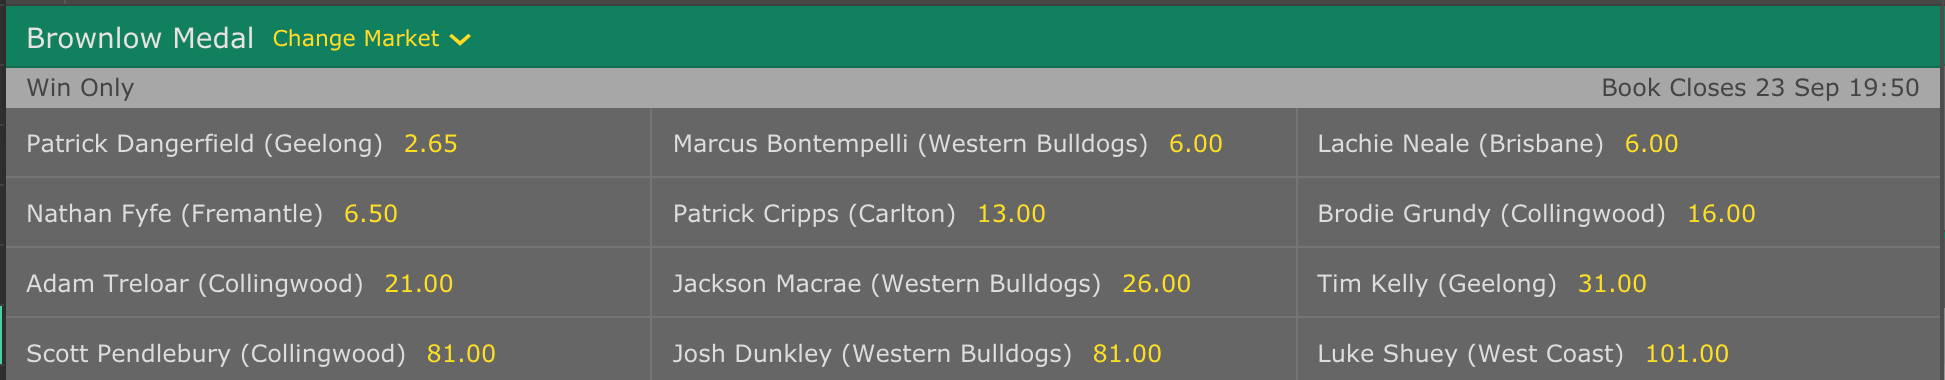 winners market for the 2019 Brownlow Medal